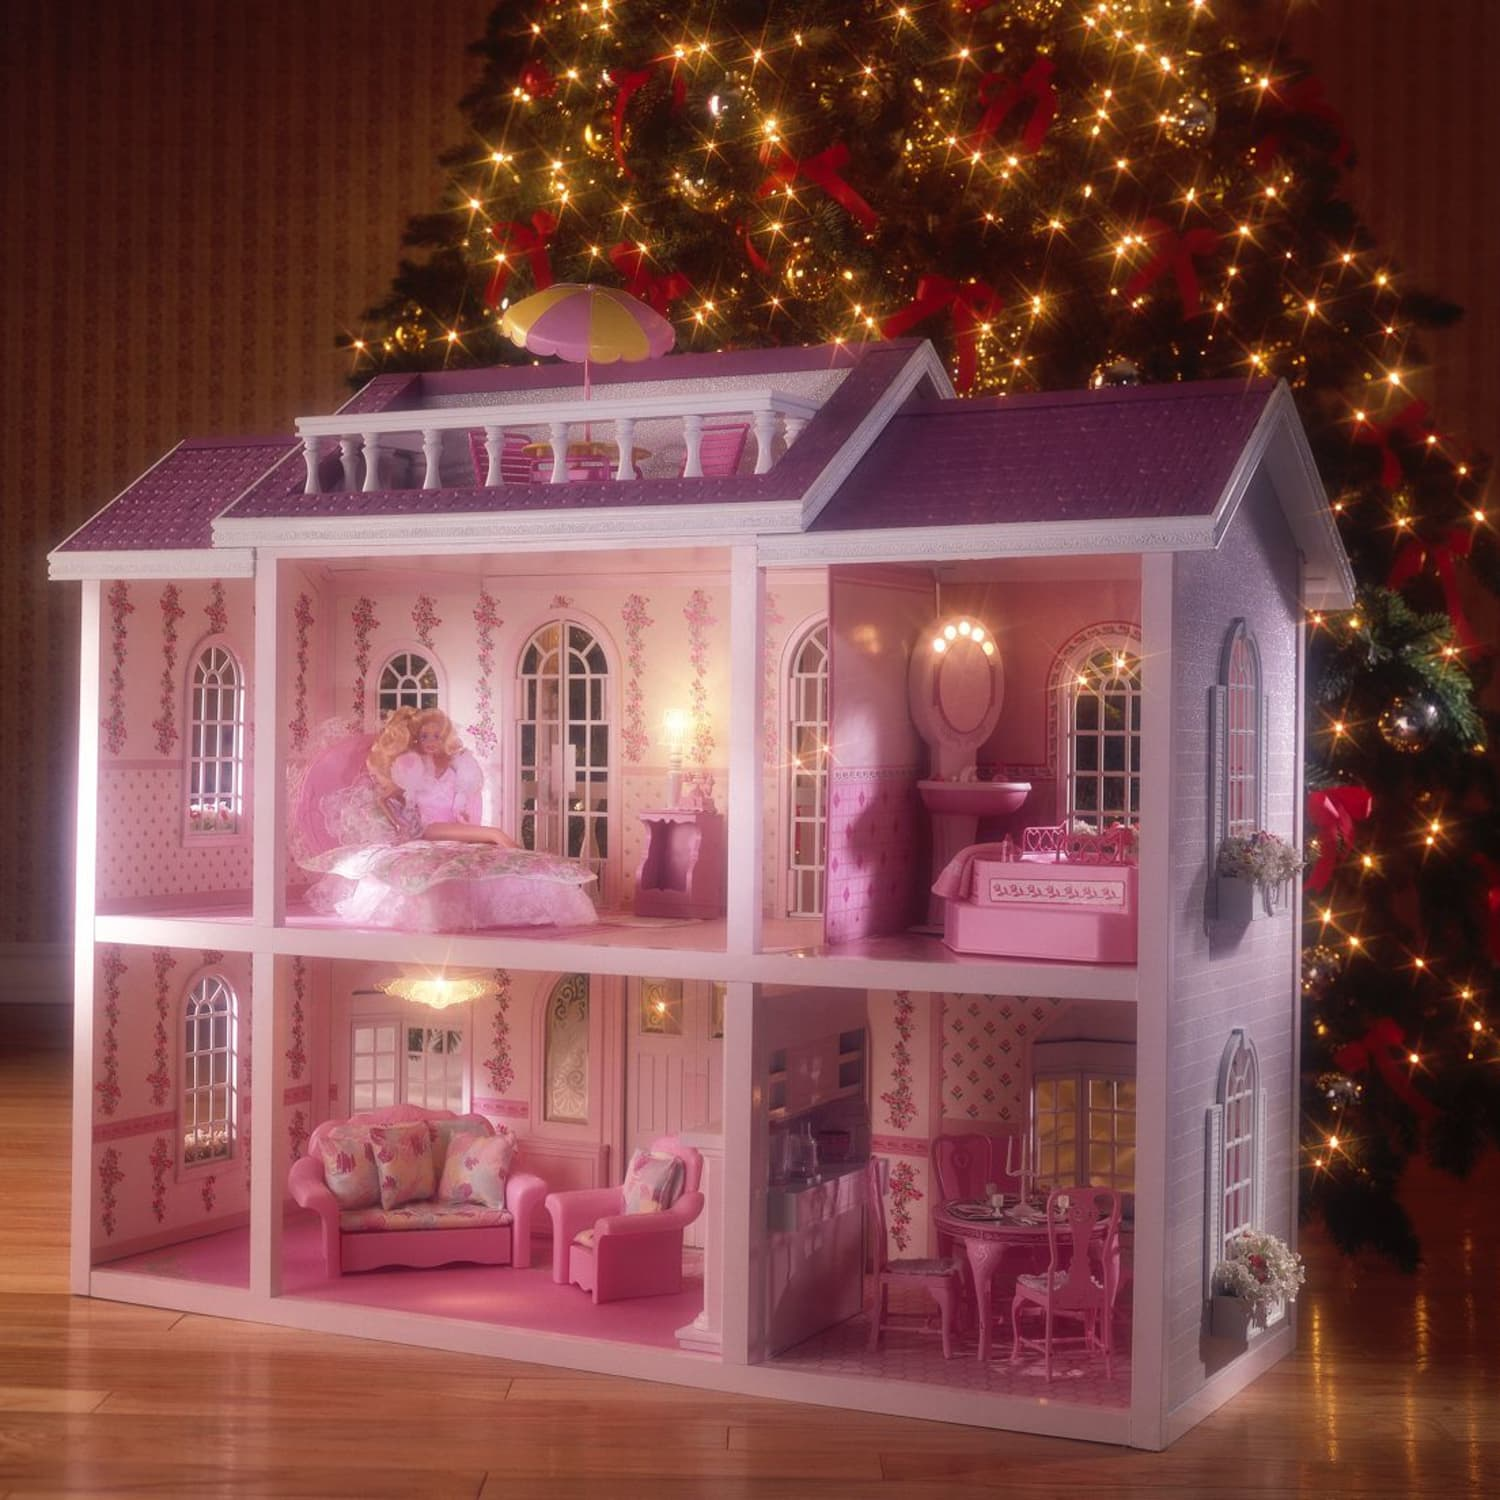 Barbie Dreamhouse - Design History, Architect Review | Apartment Therapy